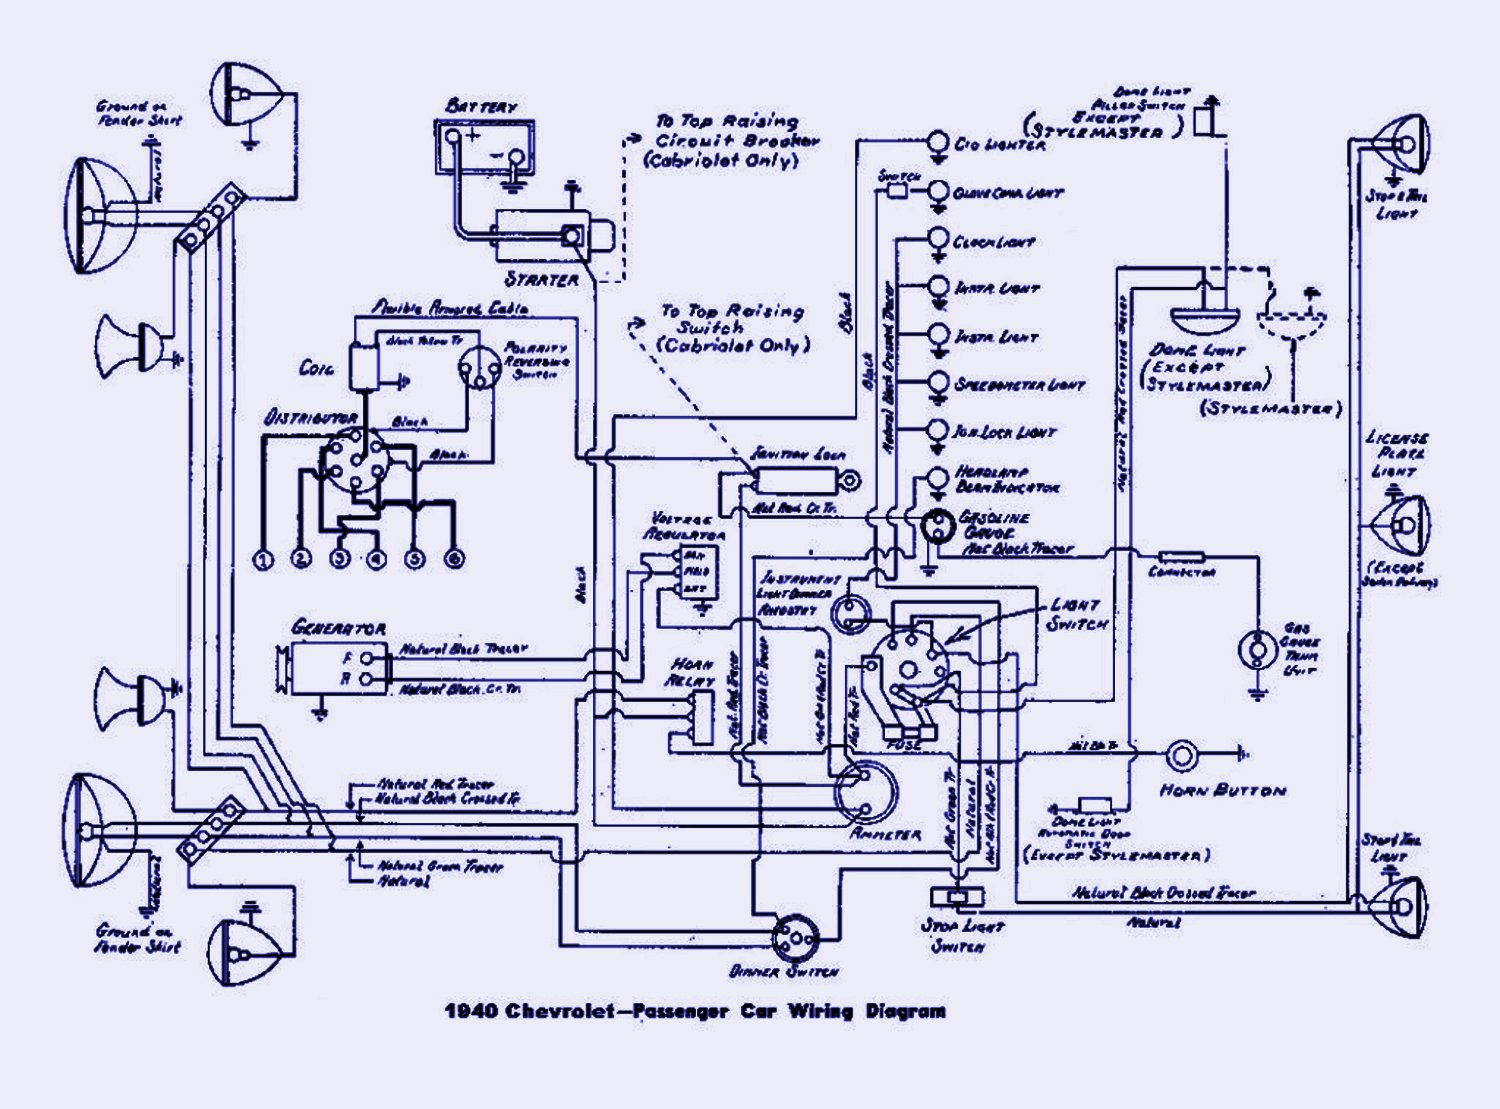 1940+Chevrolet+Passenger+Electrical+Wiring+Diagram chevy wiring diagrams chevy radio wiring \u2022 wiring diagrams j 1997 Club Car Wiring Schematic at gsmx.co